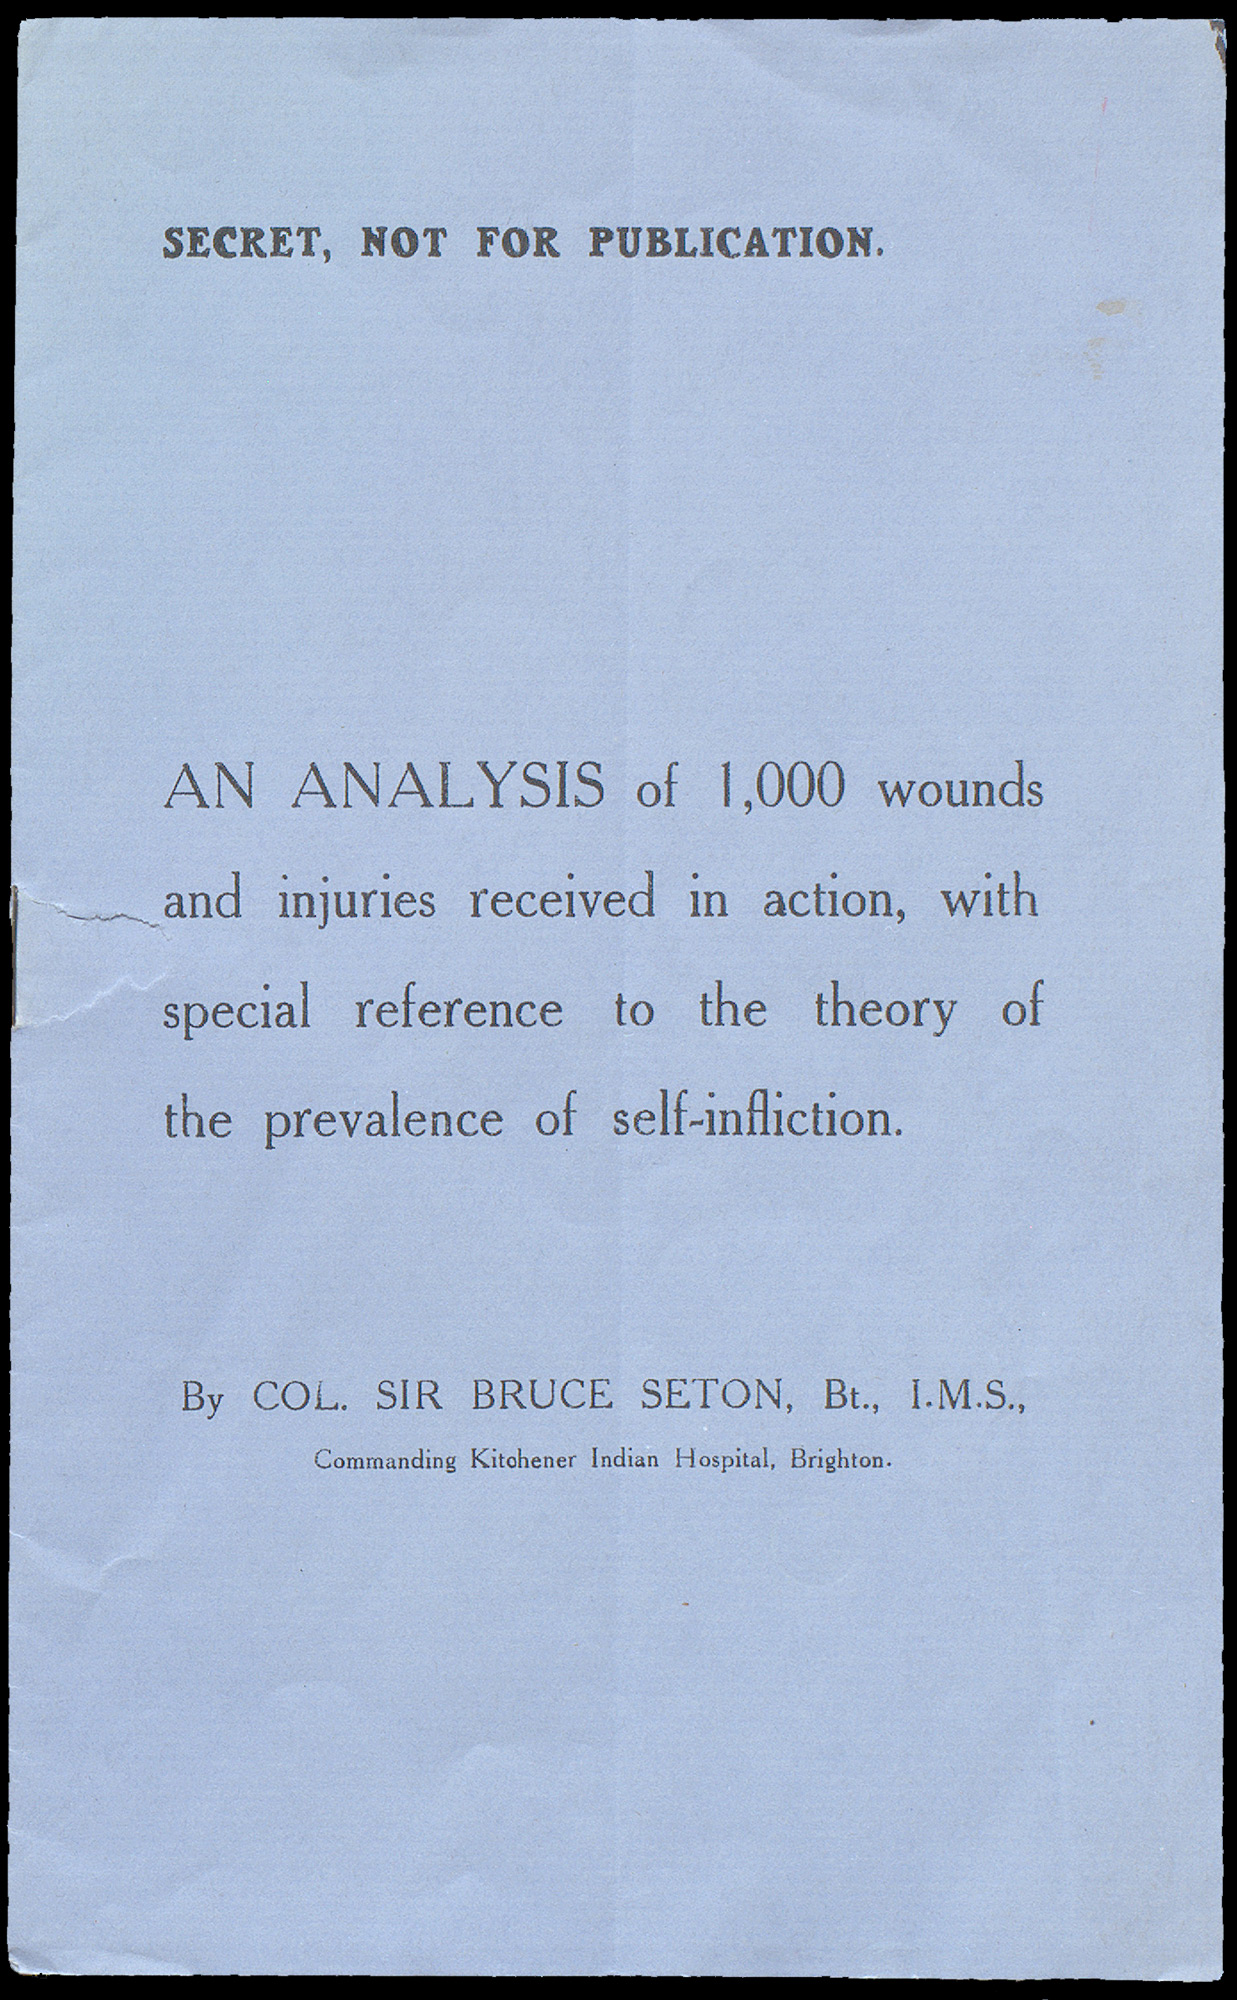 Colonel Bruce Seaton's report which found no evidence to support the theory of self-wounding among Indian soldiers.